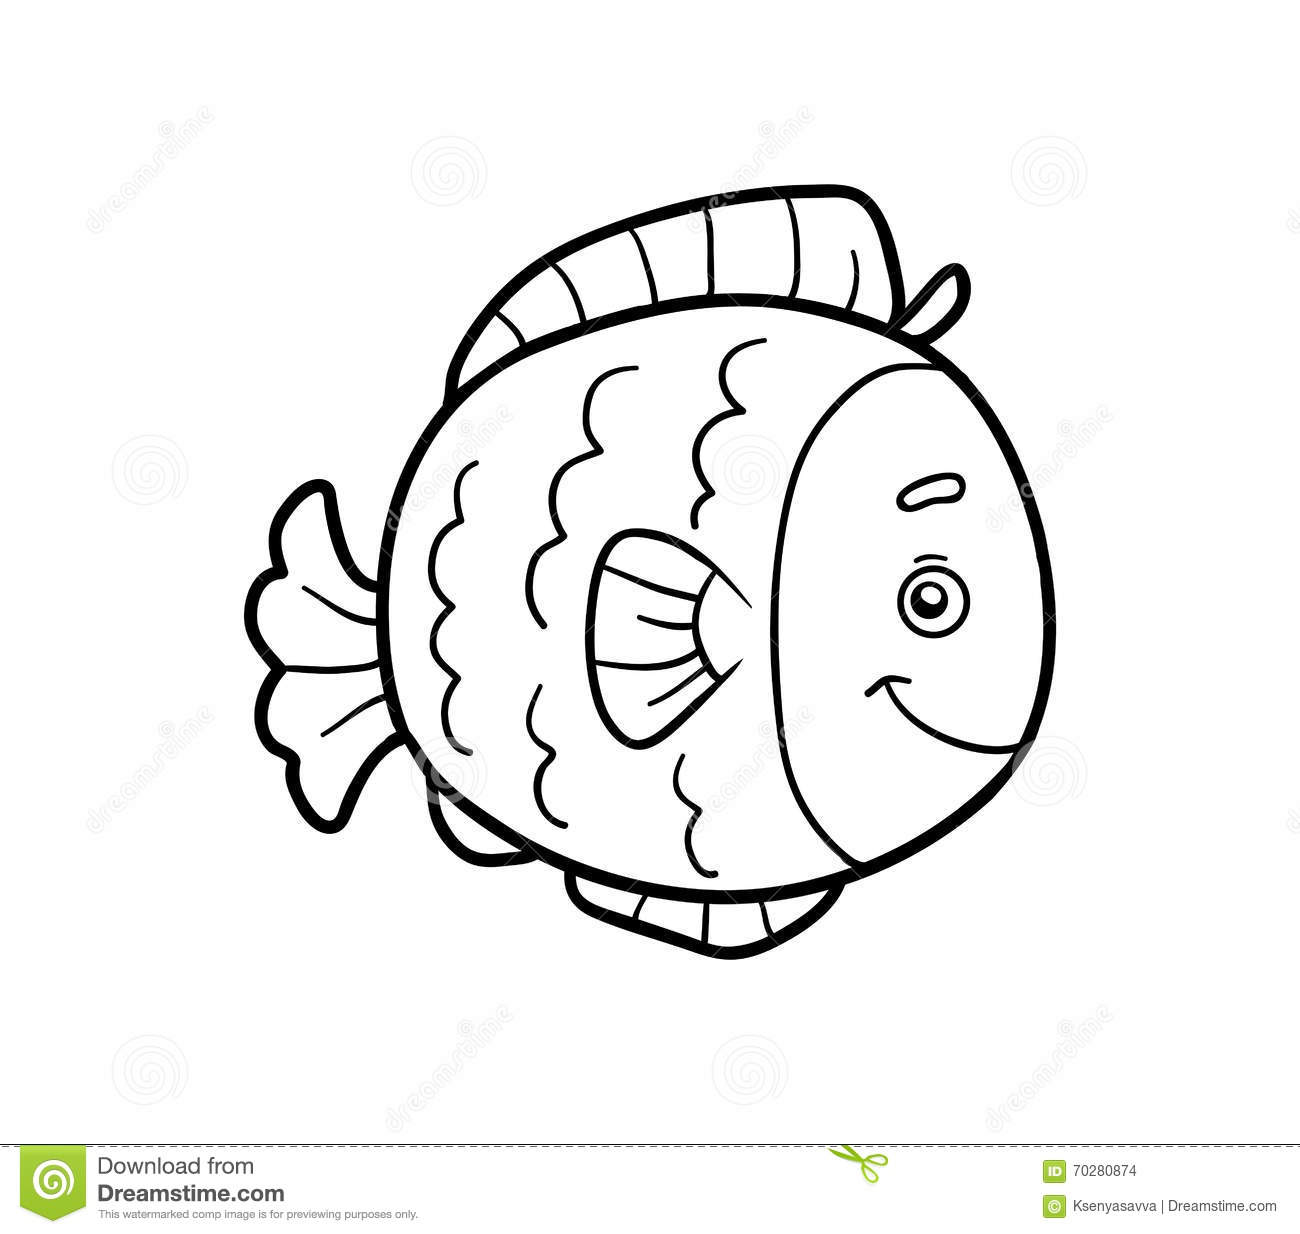 Coloring Book, Coloring Page (fish) Stock Vector - Illustration of ...